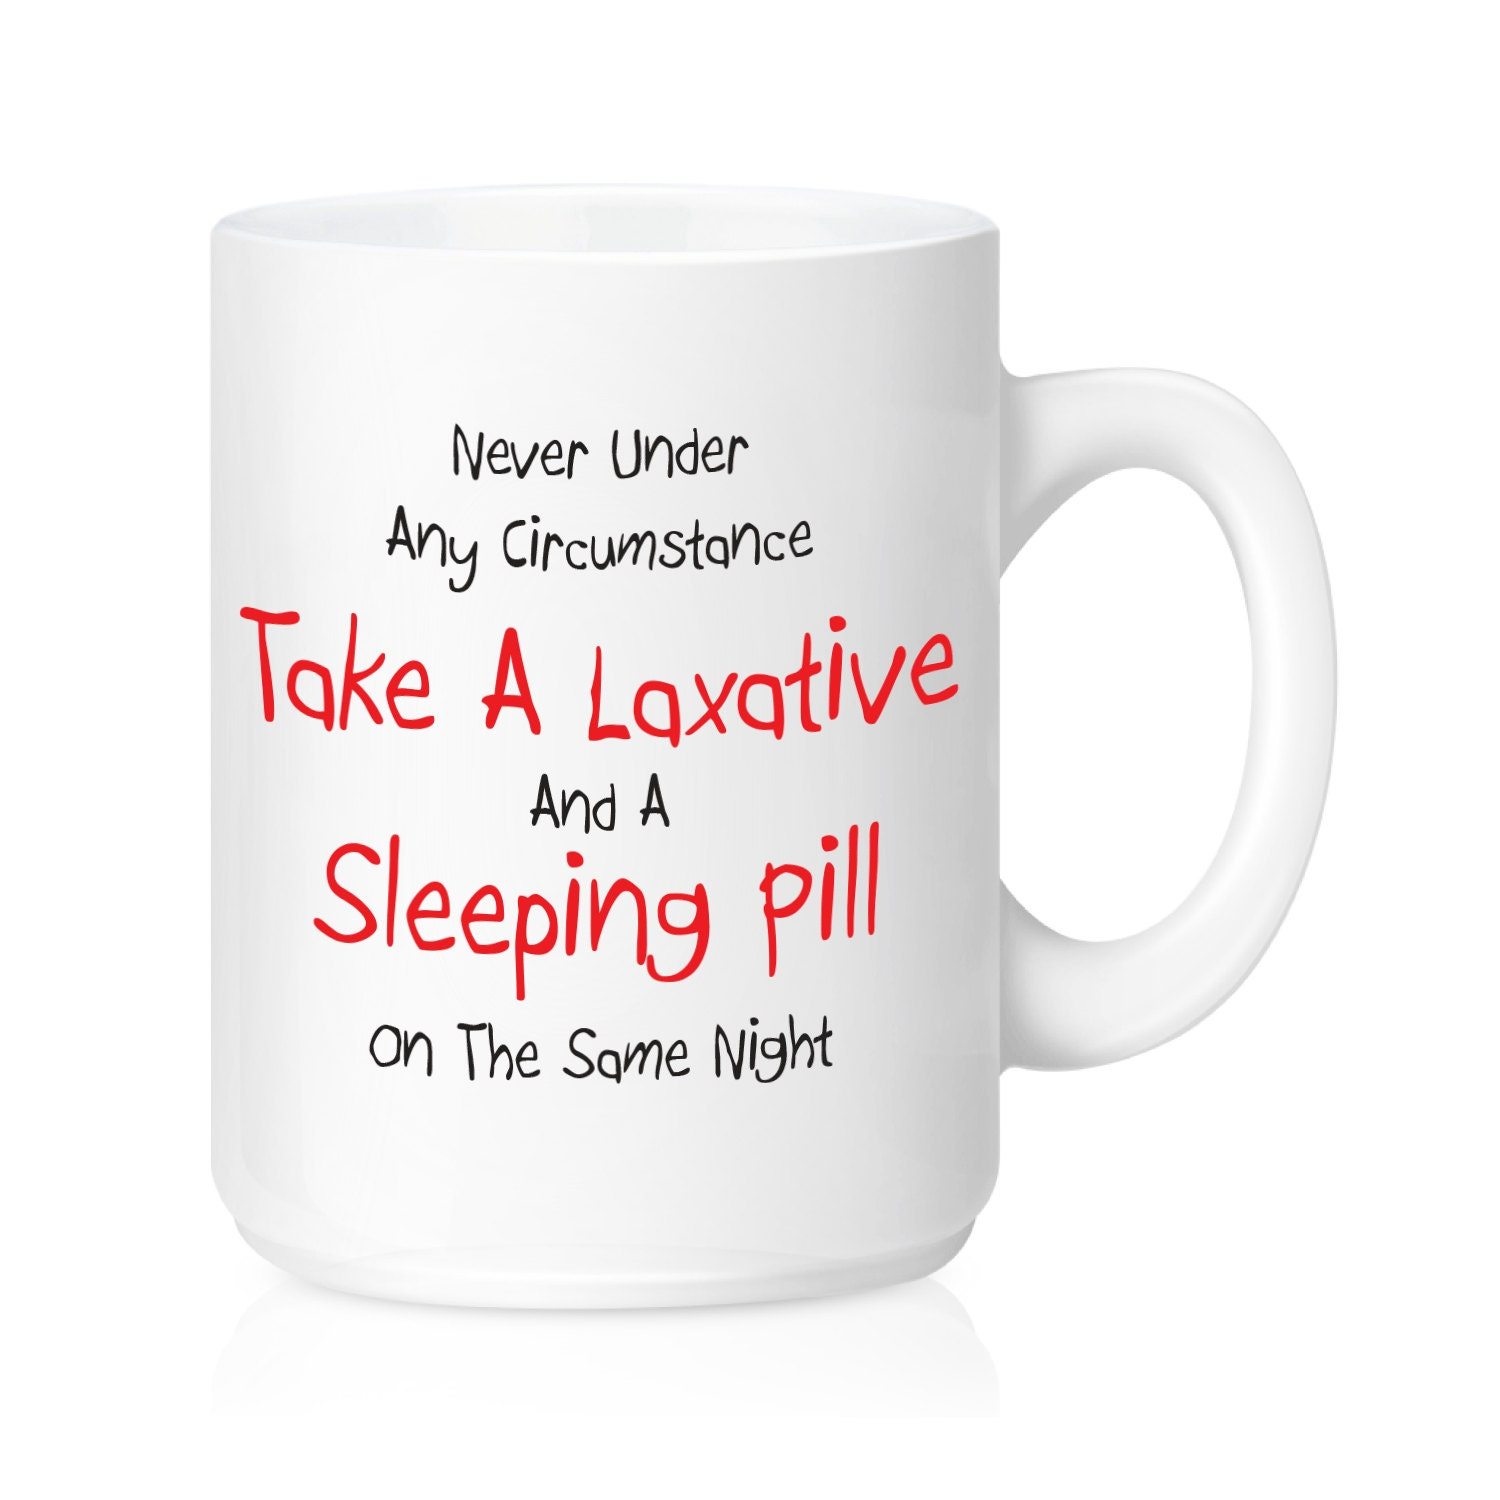 laxative coffee mug sleeping pill ceramic mug funny coffee. Black Bedroom Furniture Sets. Home Design Ideas